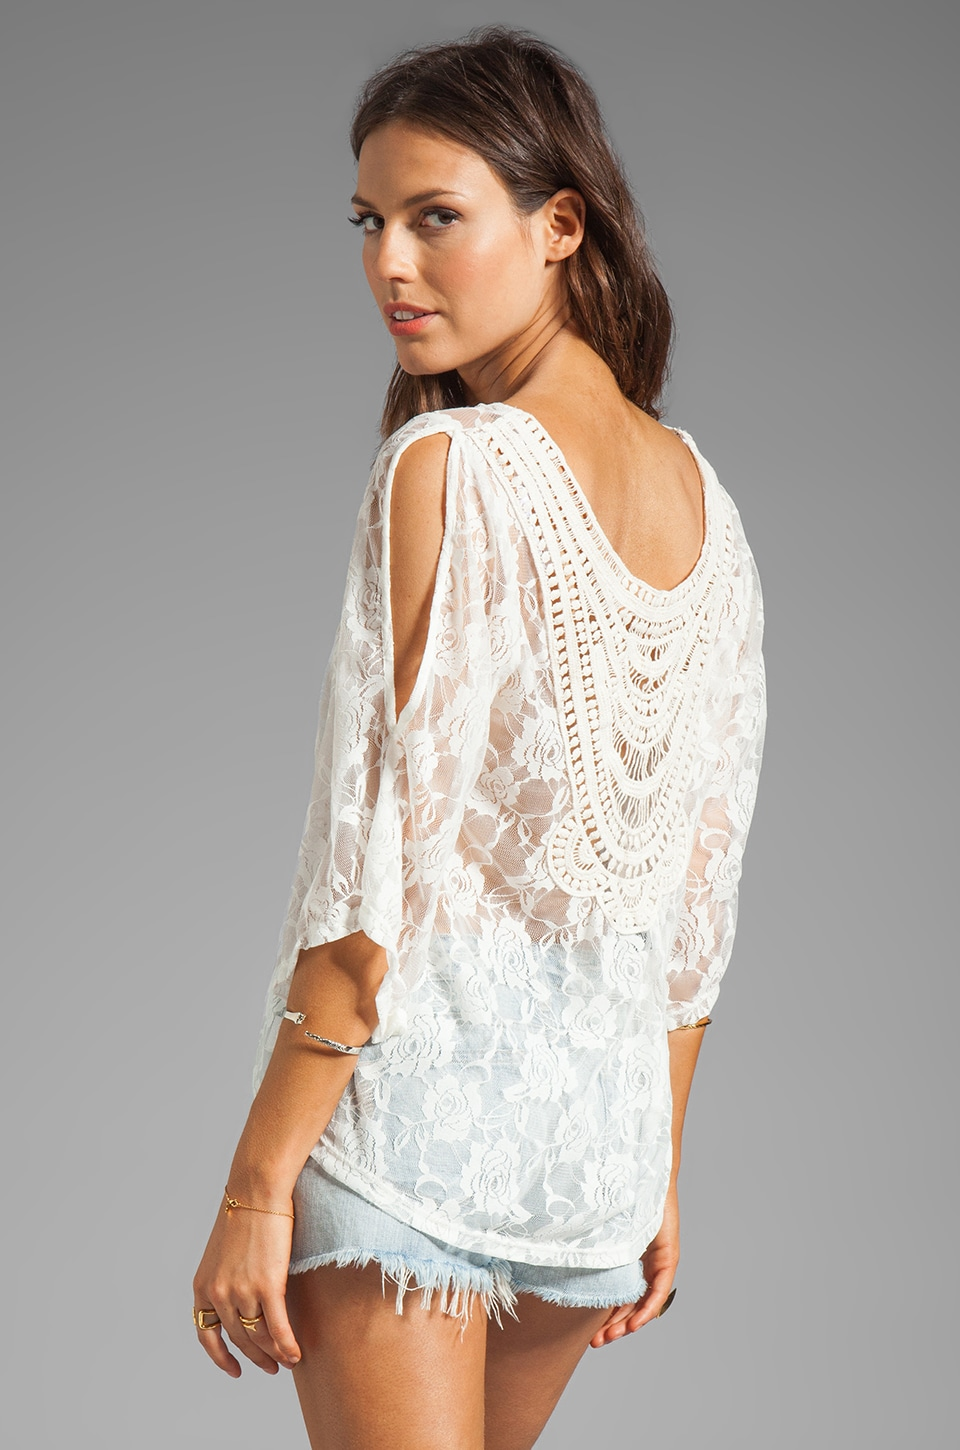 VAVA by Joy Han Bonnie Lace Top in Cream